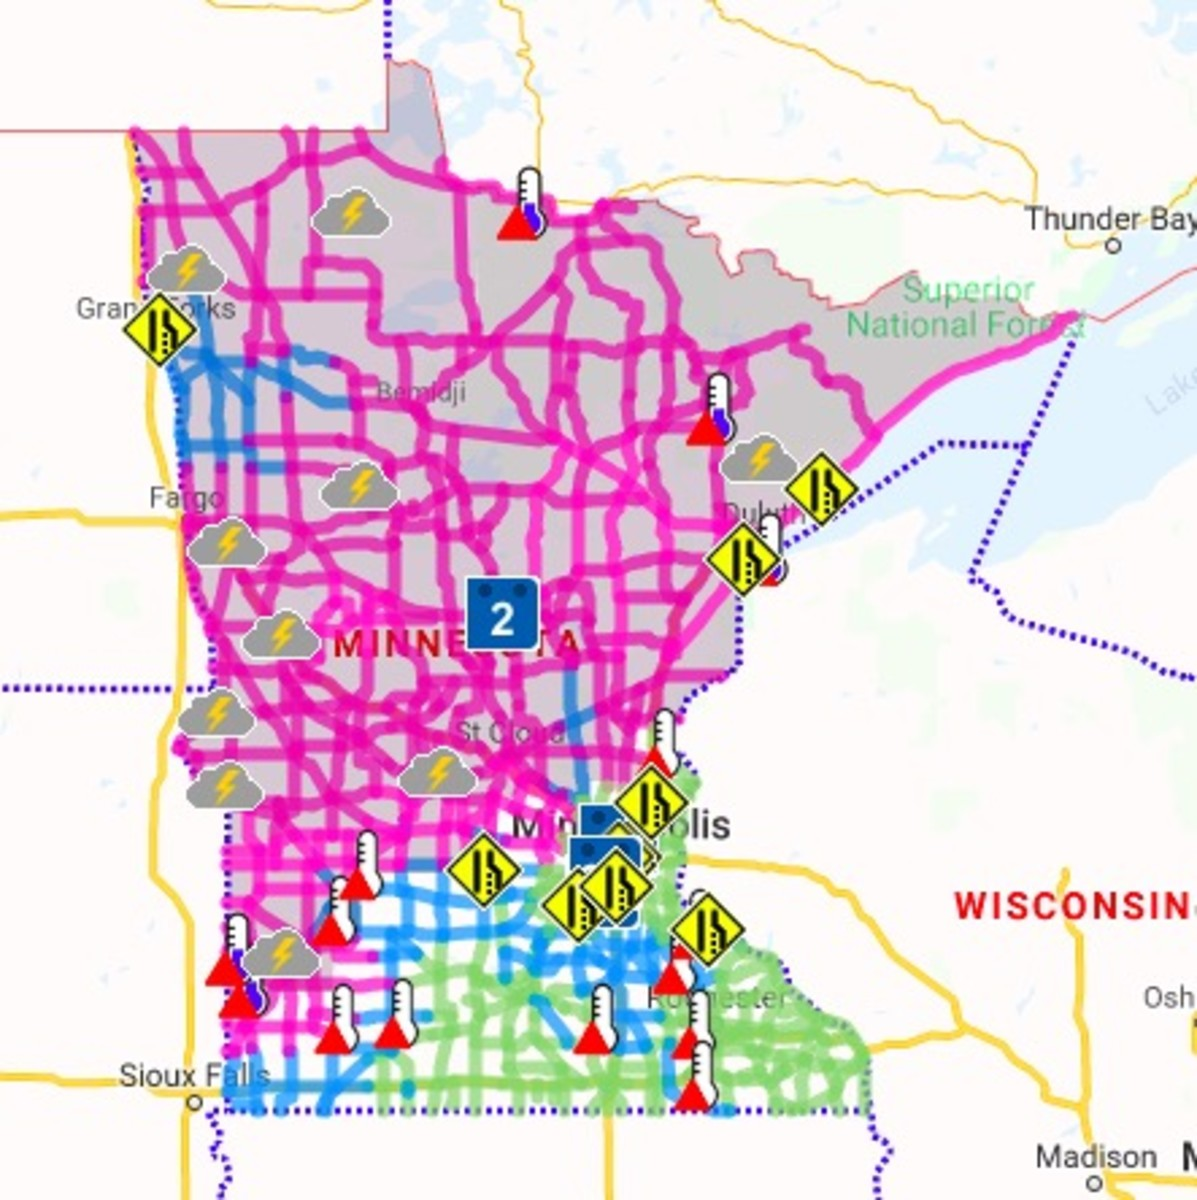 Pink roads are completely covered in snow, with blue partially covered.